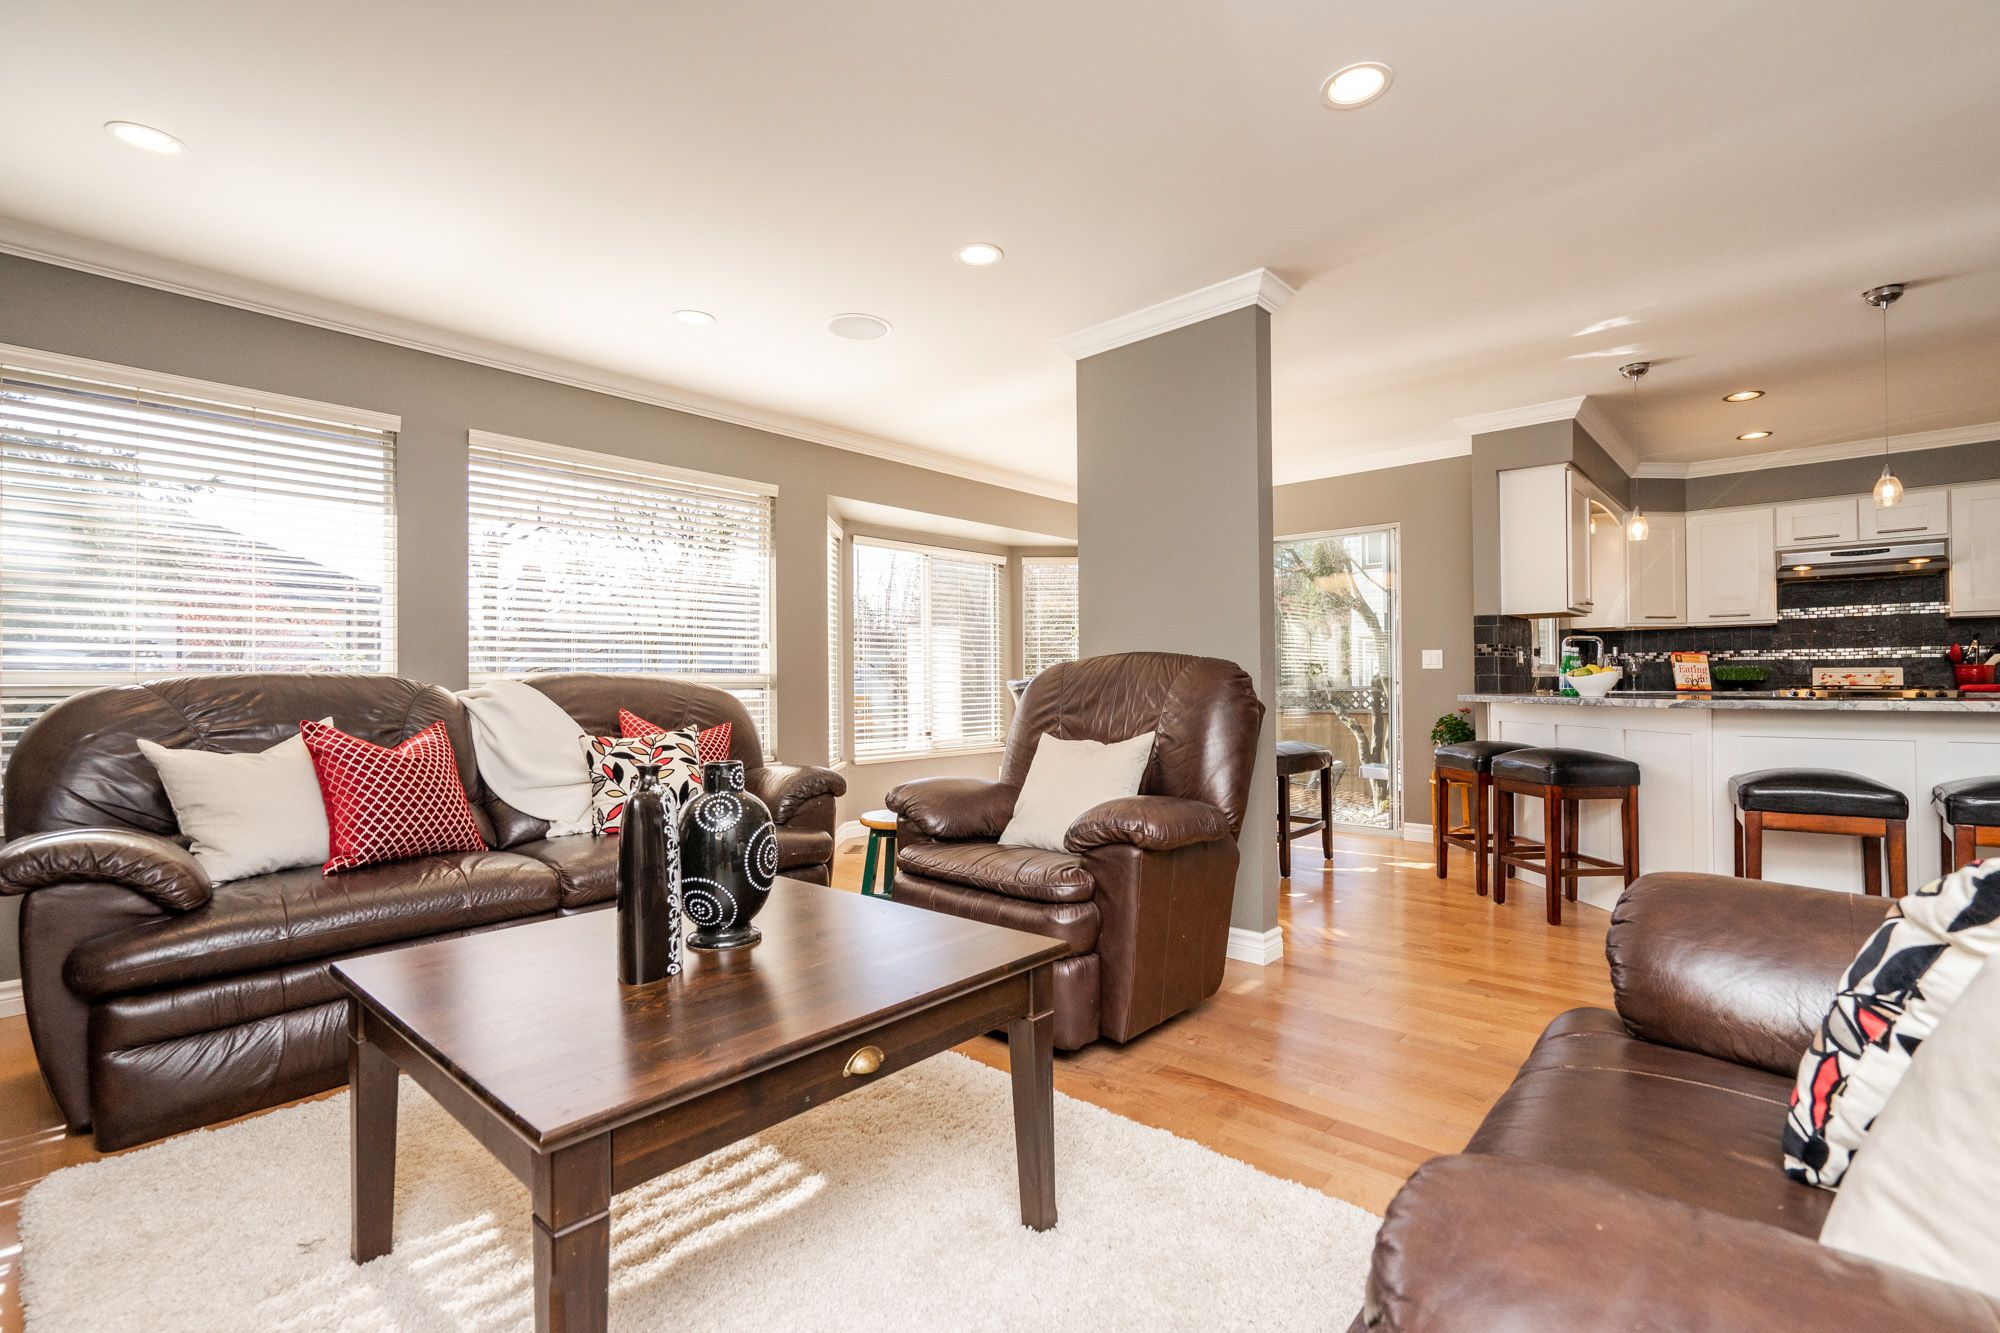 """Photo 12: Photos: 8448 213 Street in Langley: Walnut Grove House for sale in """"Forest Hills"""" : MLS®# R2259409"""